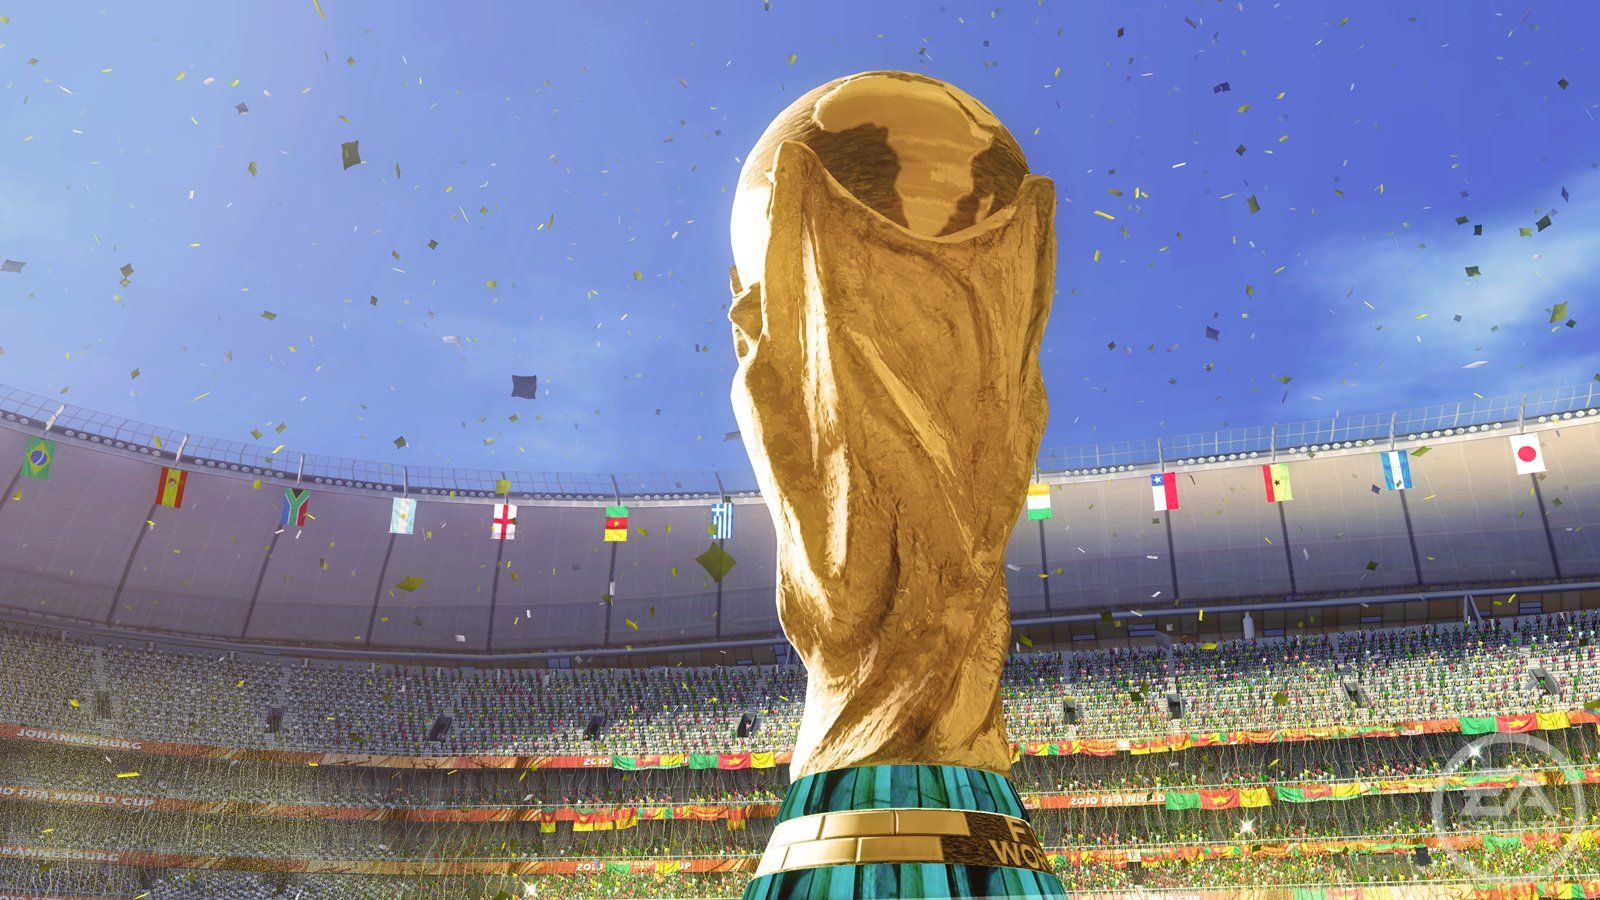 2010 Fifa World Cup South Africa Playstation 3 World Fifa Cup Playstation Fifa World Cup Game World Cup World Cup Trophy